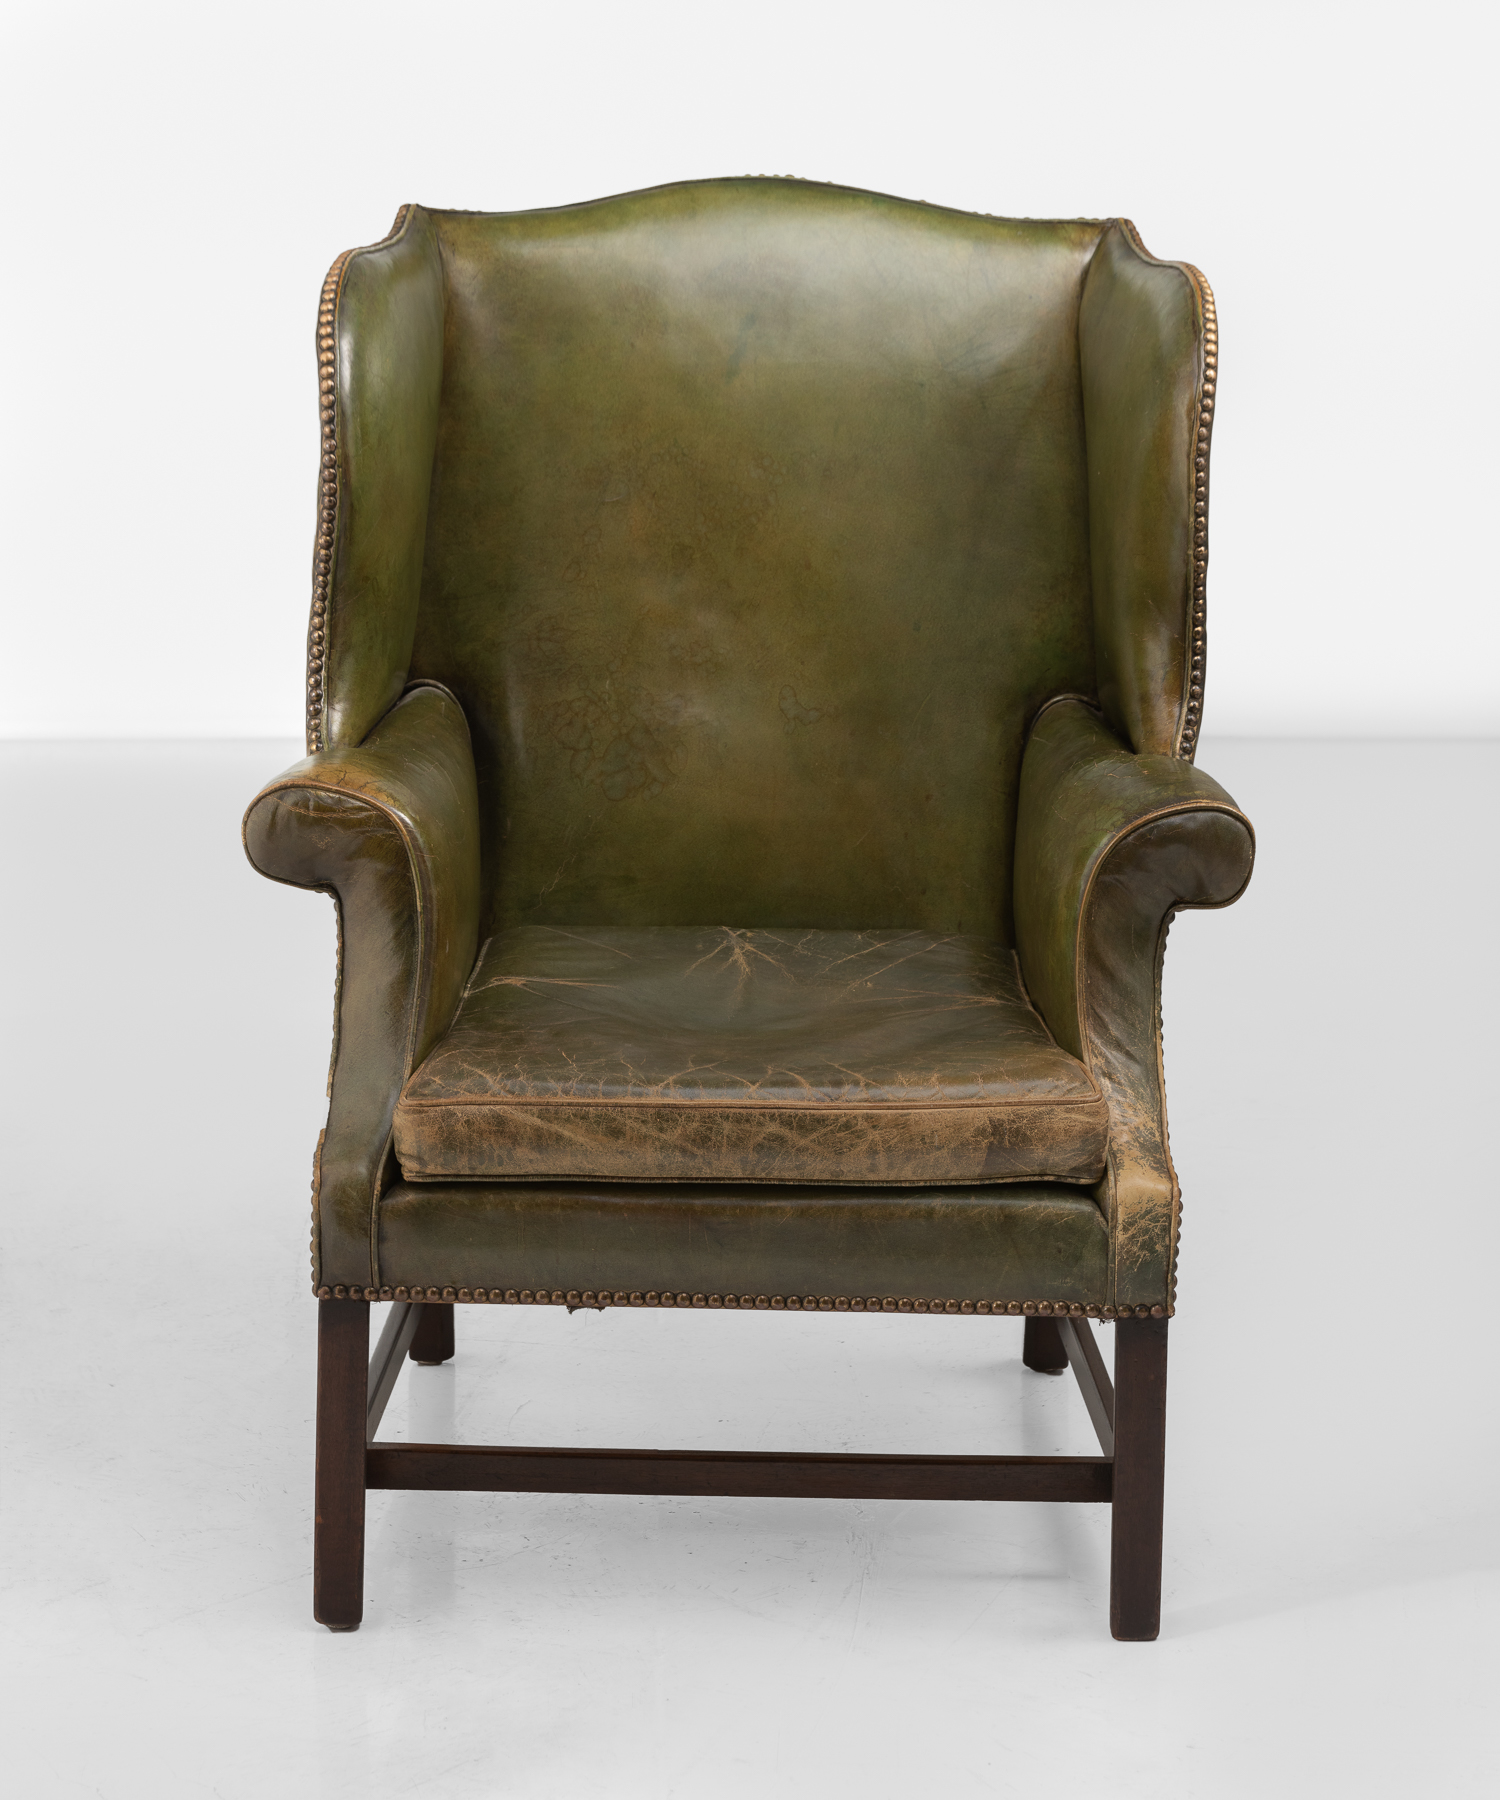 Super Green Leather Wingback Chair Obsolete Camellatalisay Diy Chair Ideas Camellatalisaycom